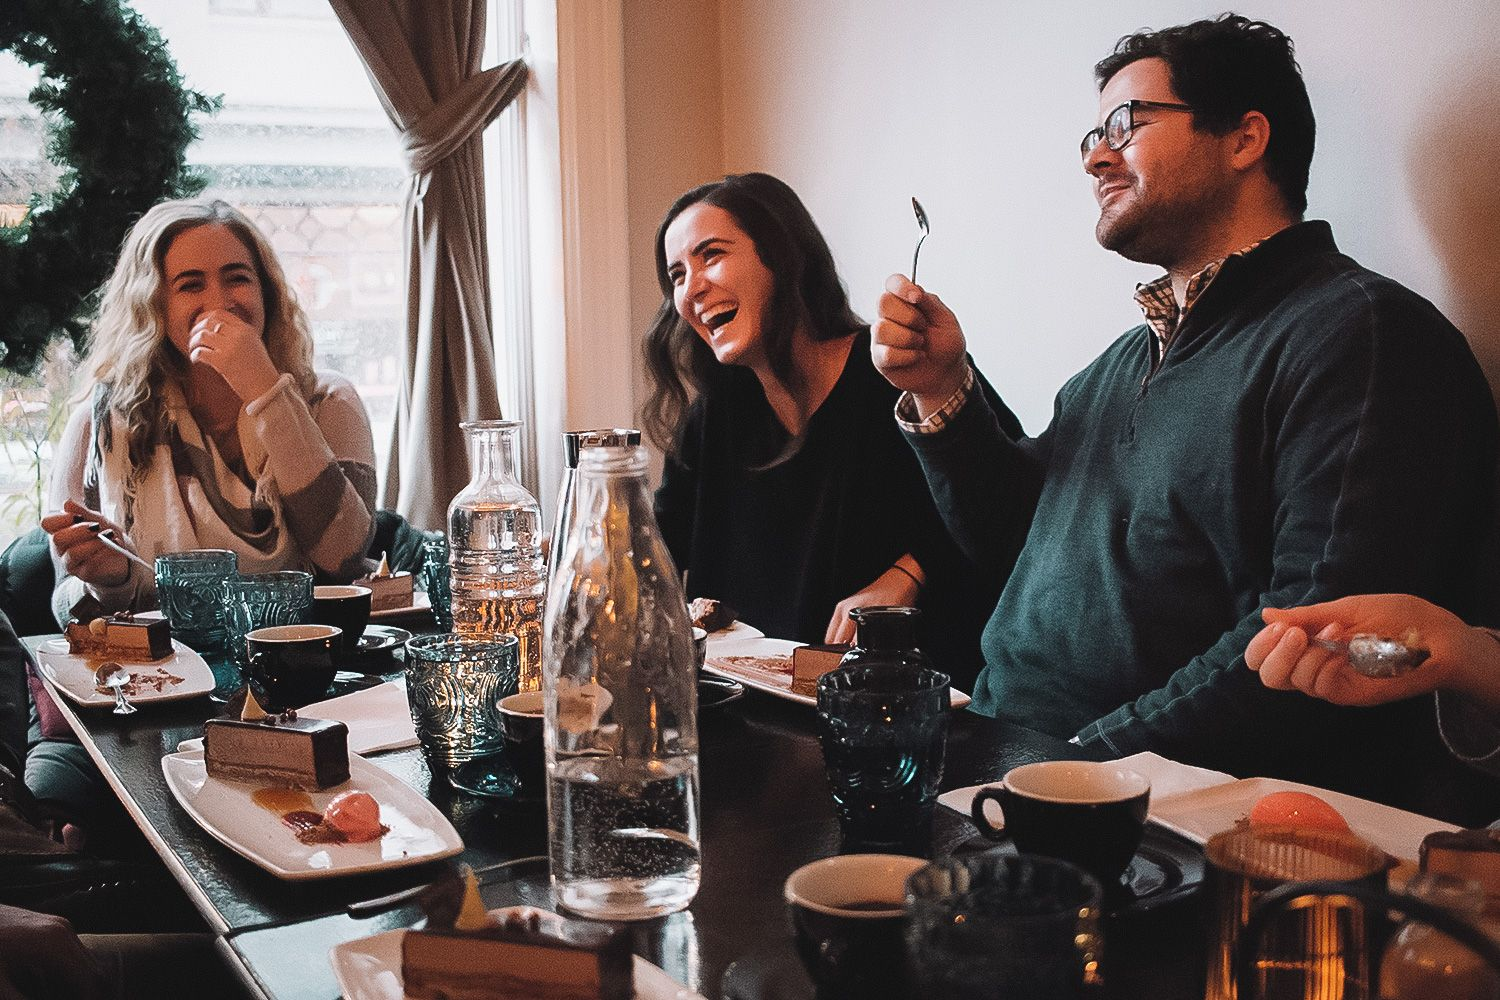 Guests enjoying an Icelandic food tasting